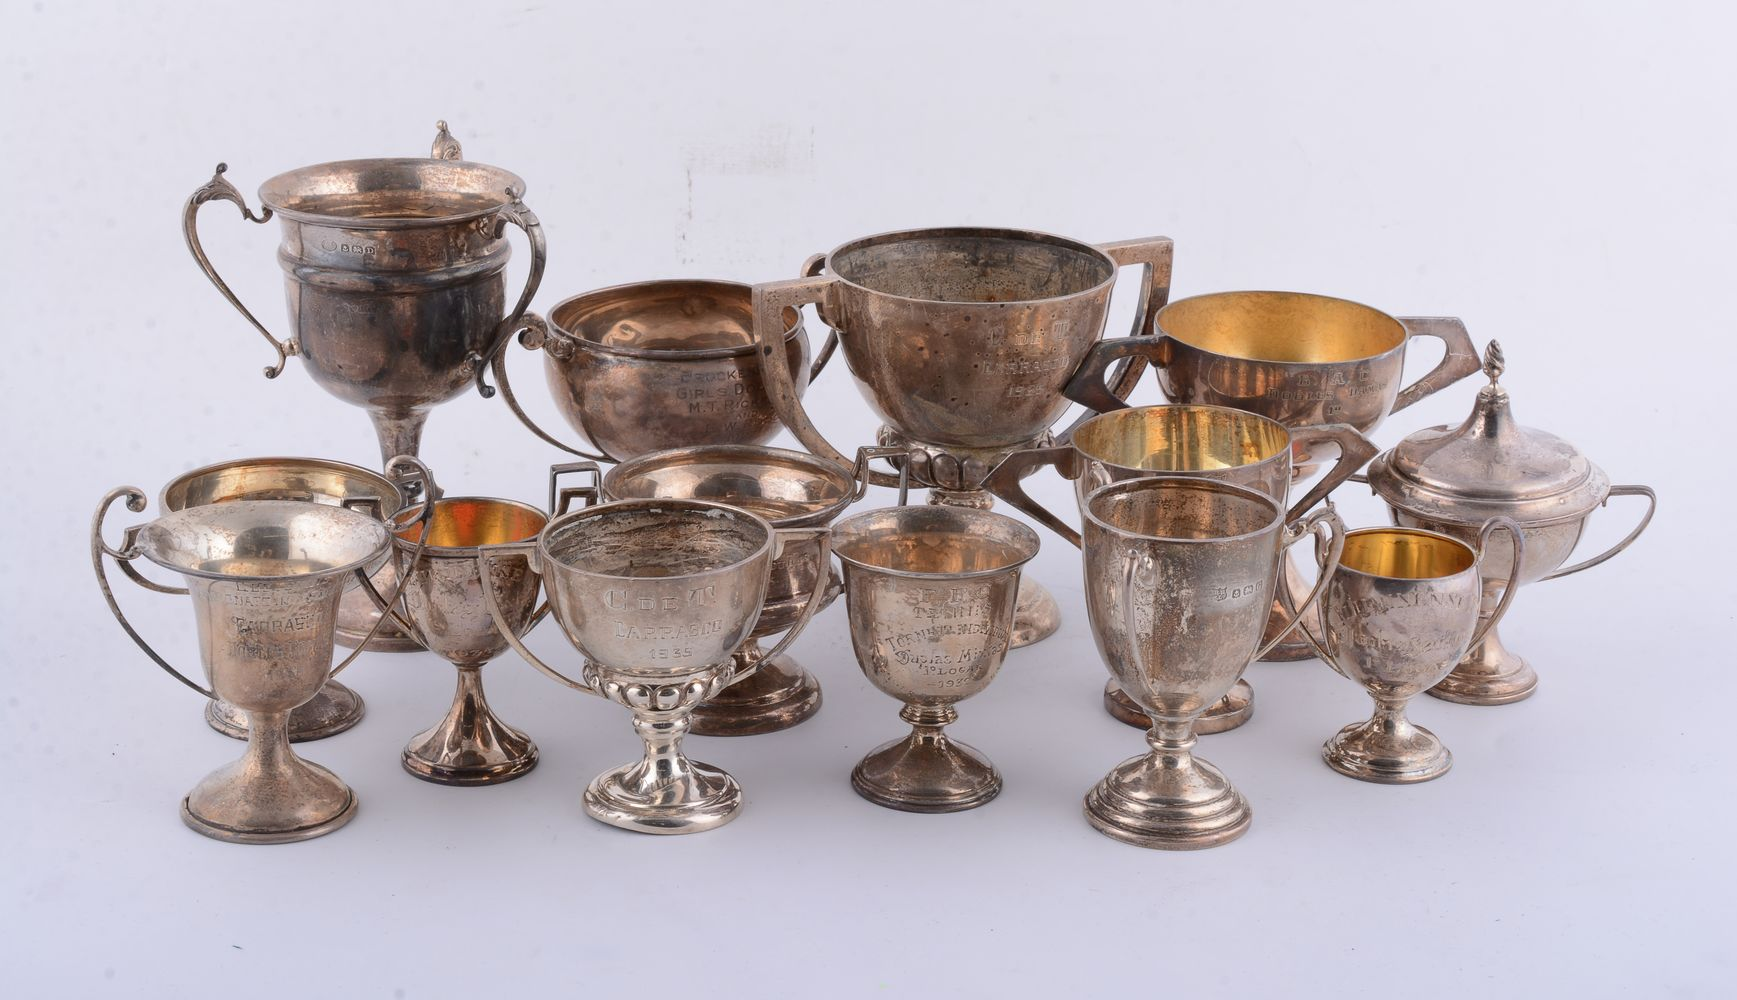 Twelve silver or silver coloured trophy cups